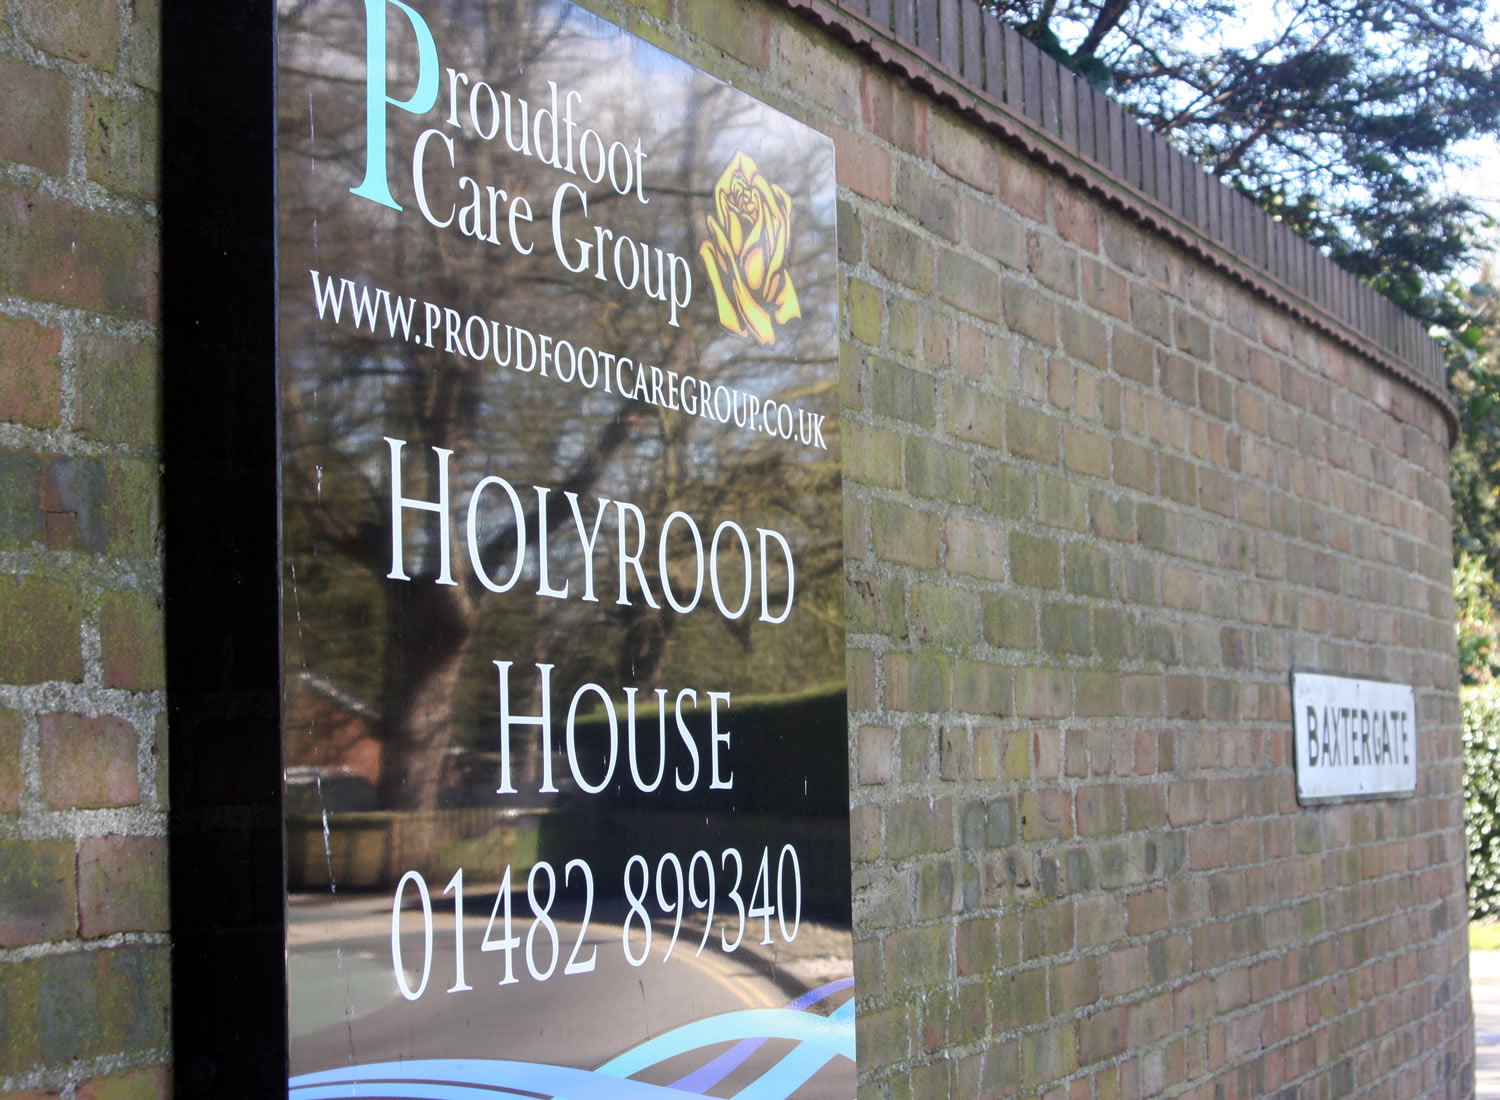 Holyrood House Care Home in Hedon 8